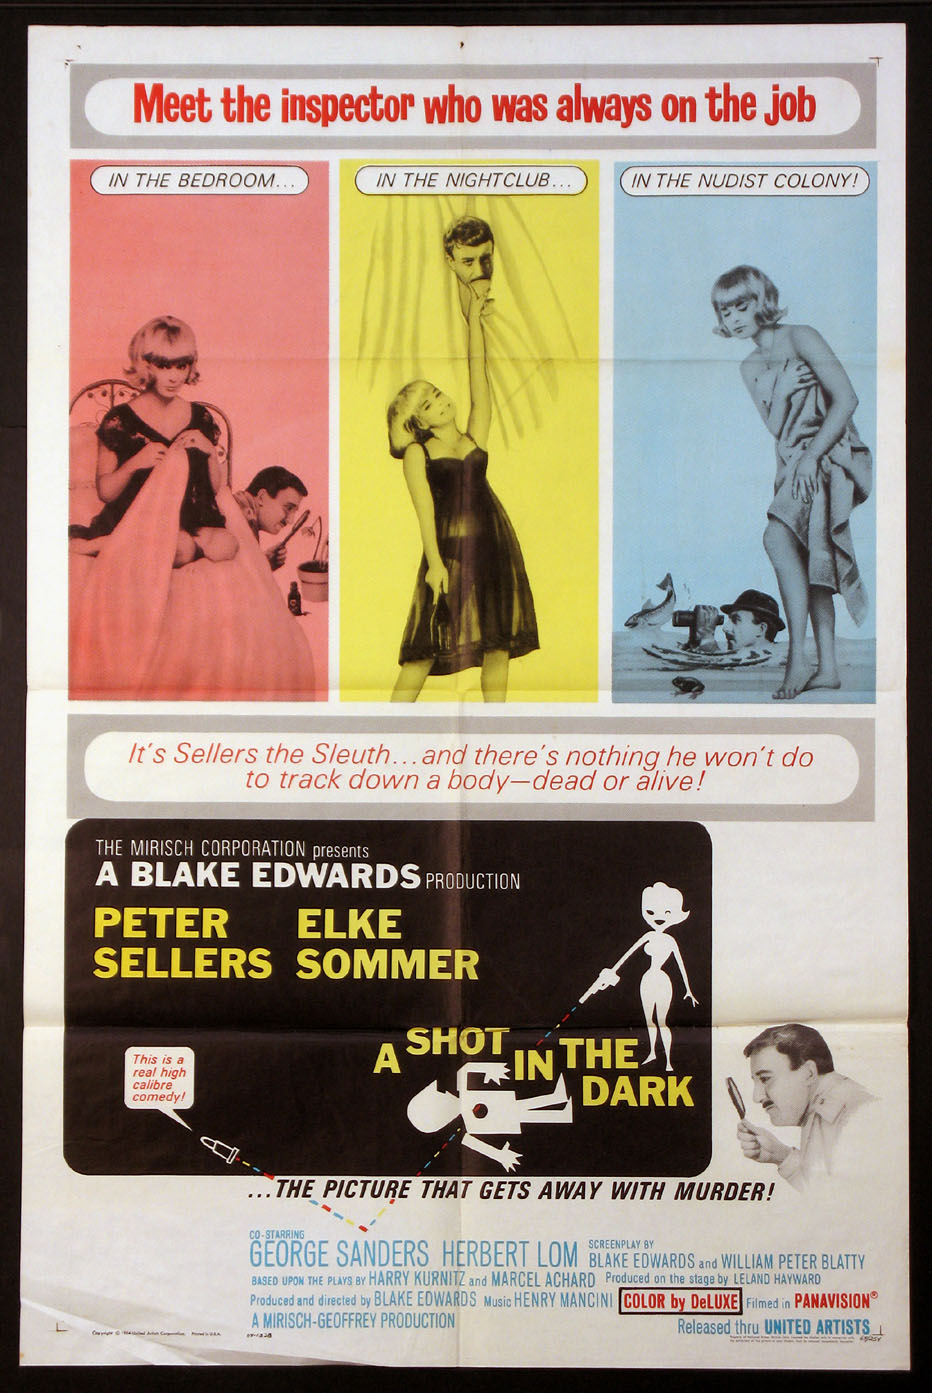 SHOT IN THE DARK, A (Pink Panther series) @ FilmPosters.com